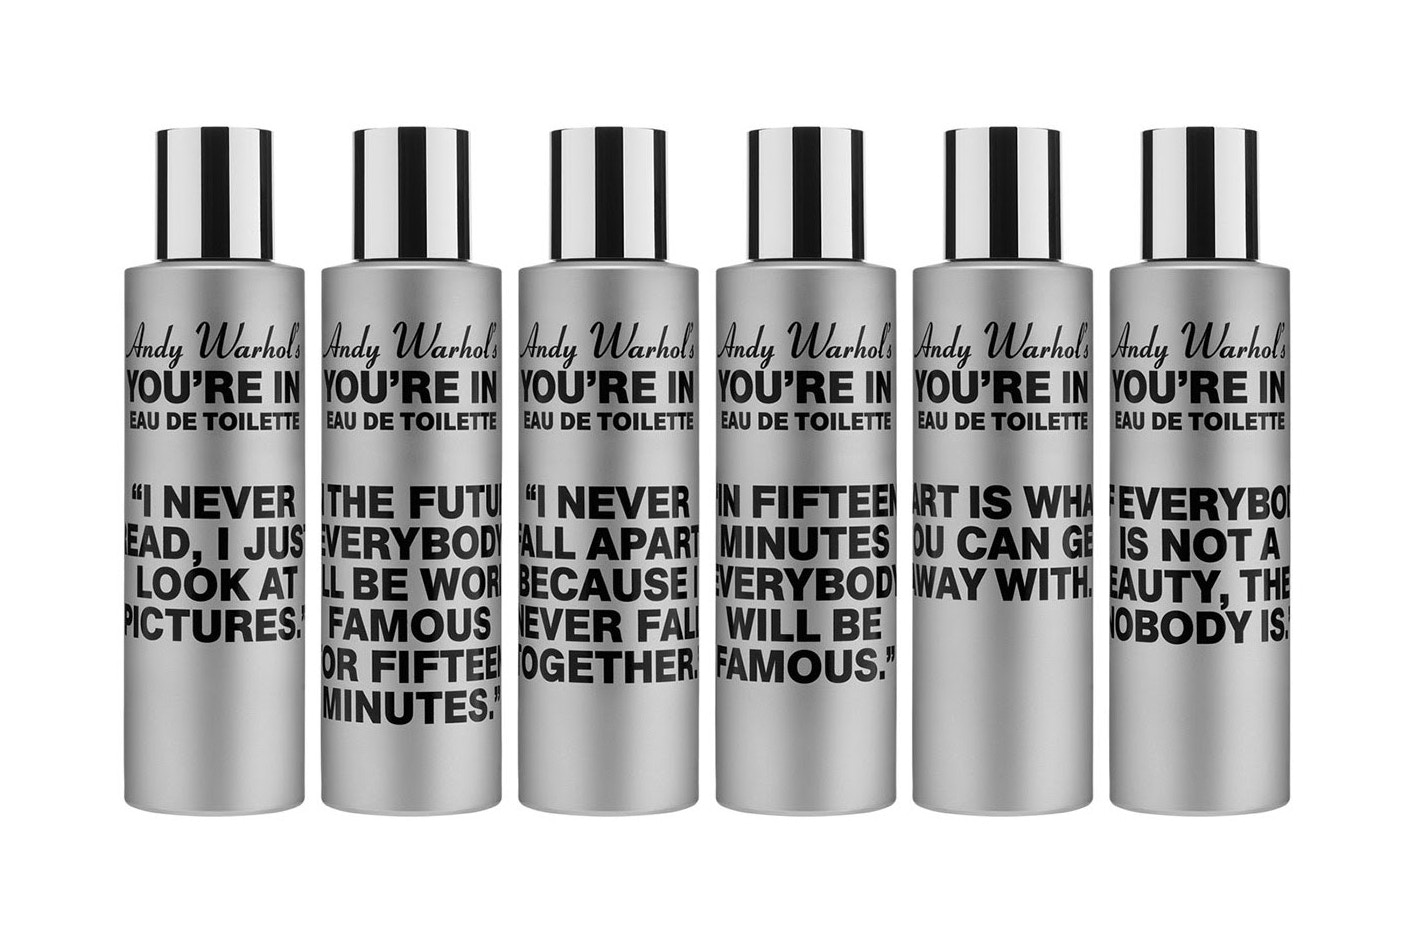 "COMME des GARÇONS ""Andy Warhol's You're In"" Fragrance"